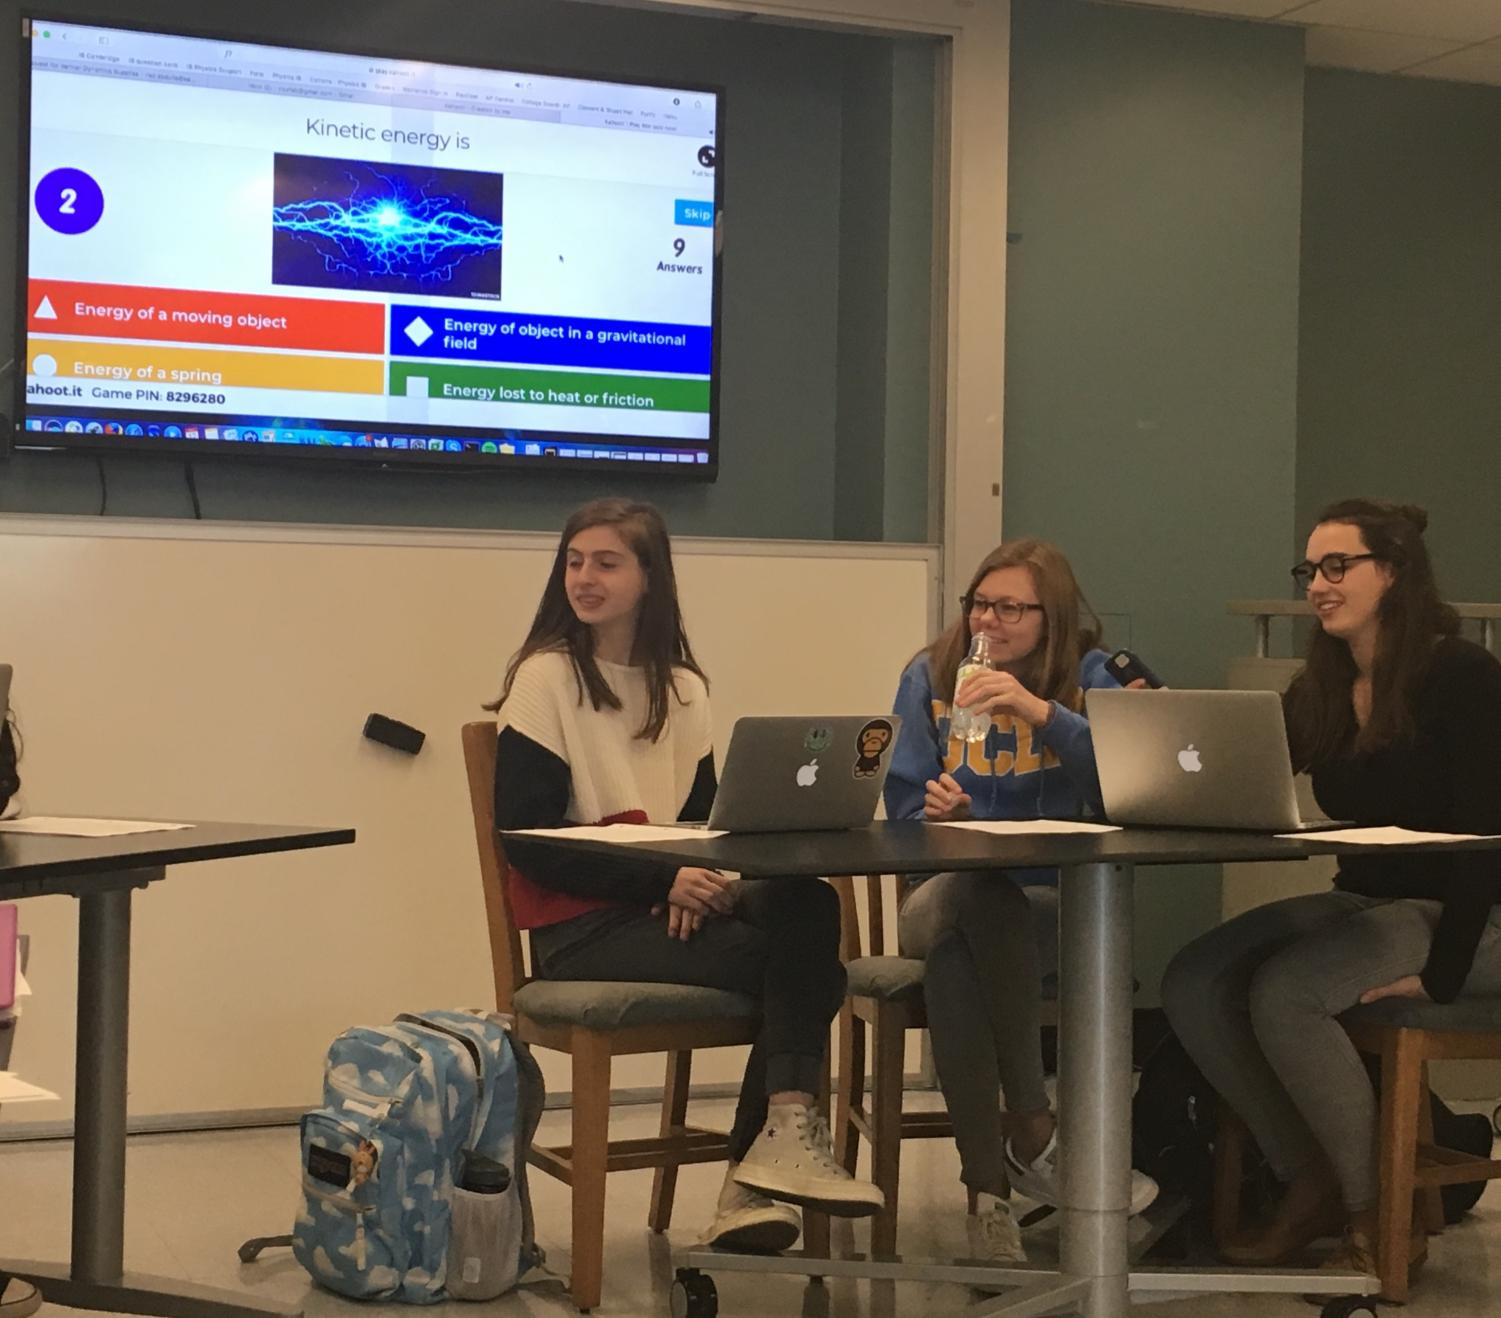 Juniors Emma Kob, Molly Brown, and Amelia Estes participate in a Kahoot quiz before their physics class. The Kahoot reviewed topics they had gone over earlier in the semester as a refresher.